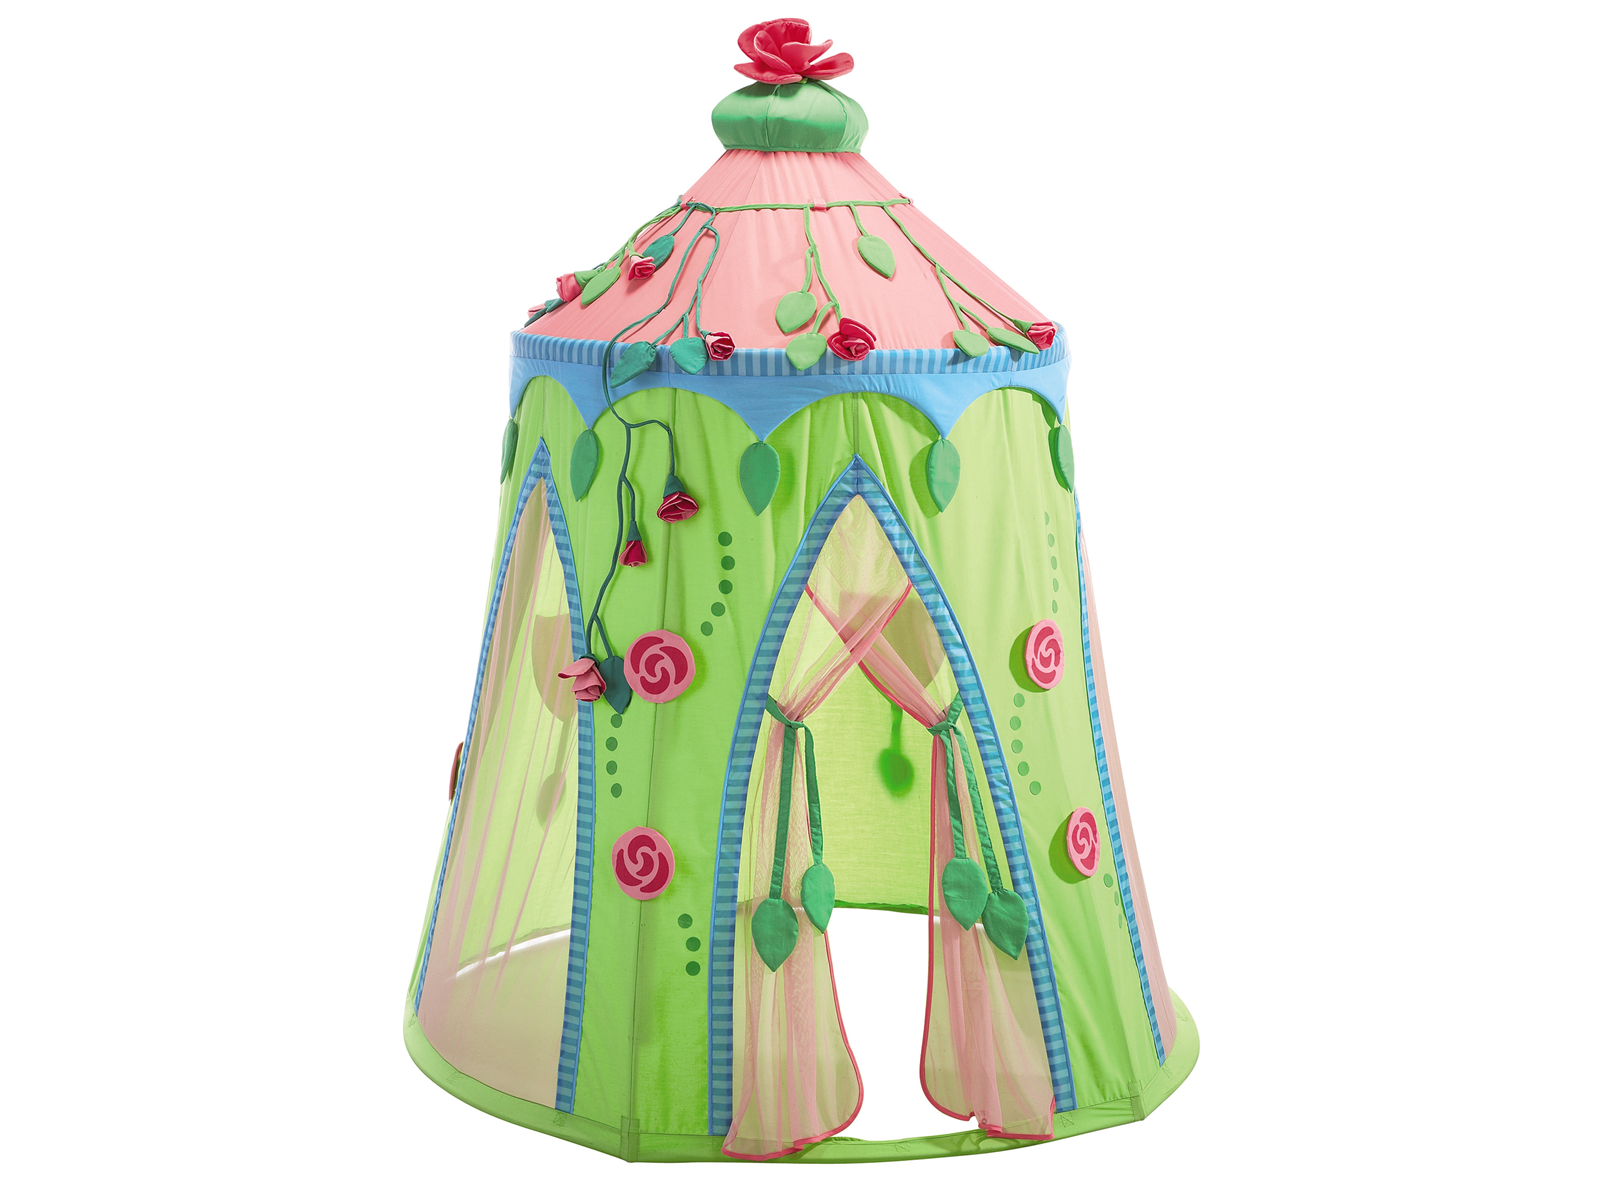 Haba Rose Fairy Play Tent - Playhouse of Dreams  - 4